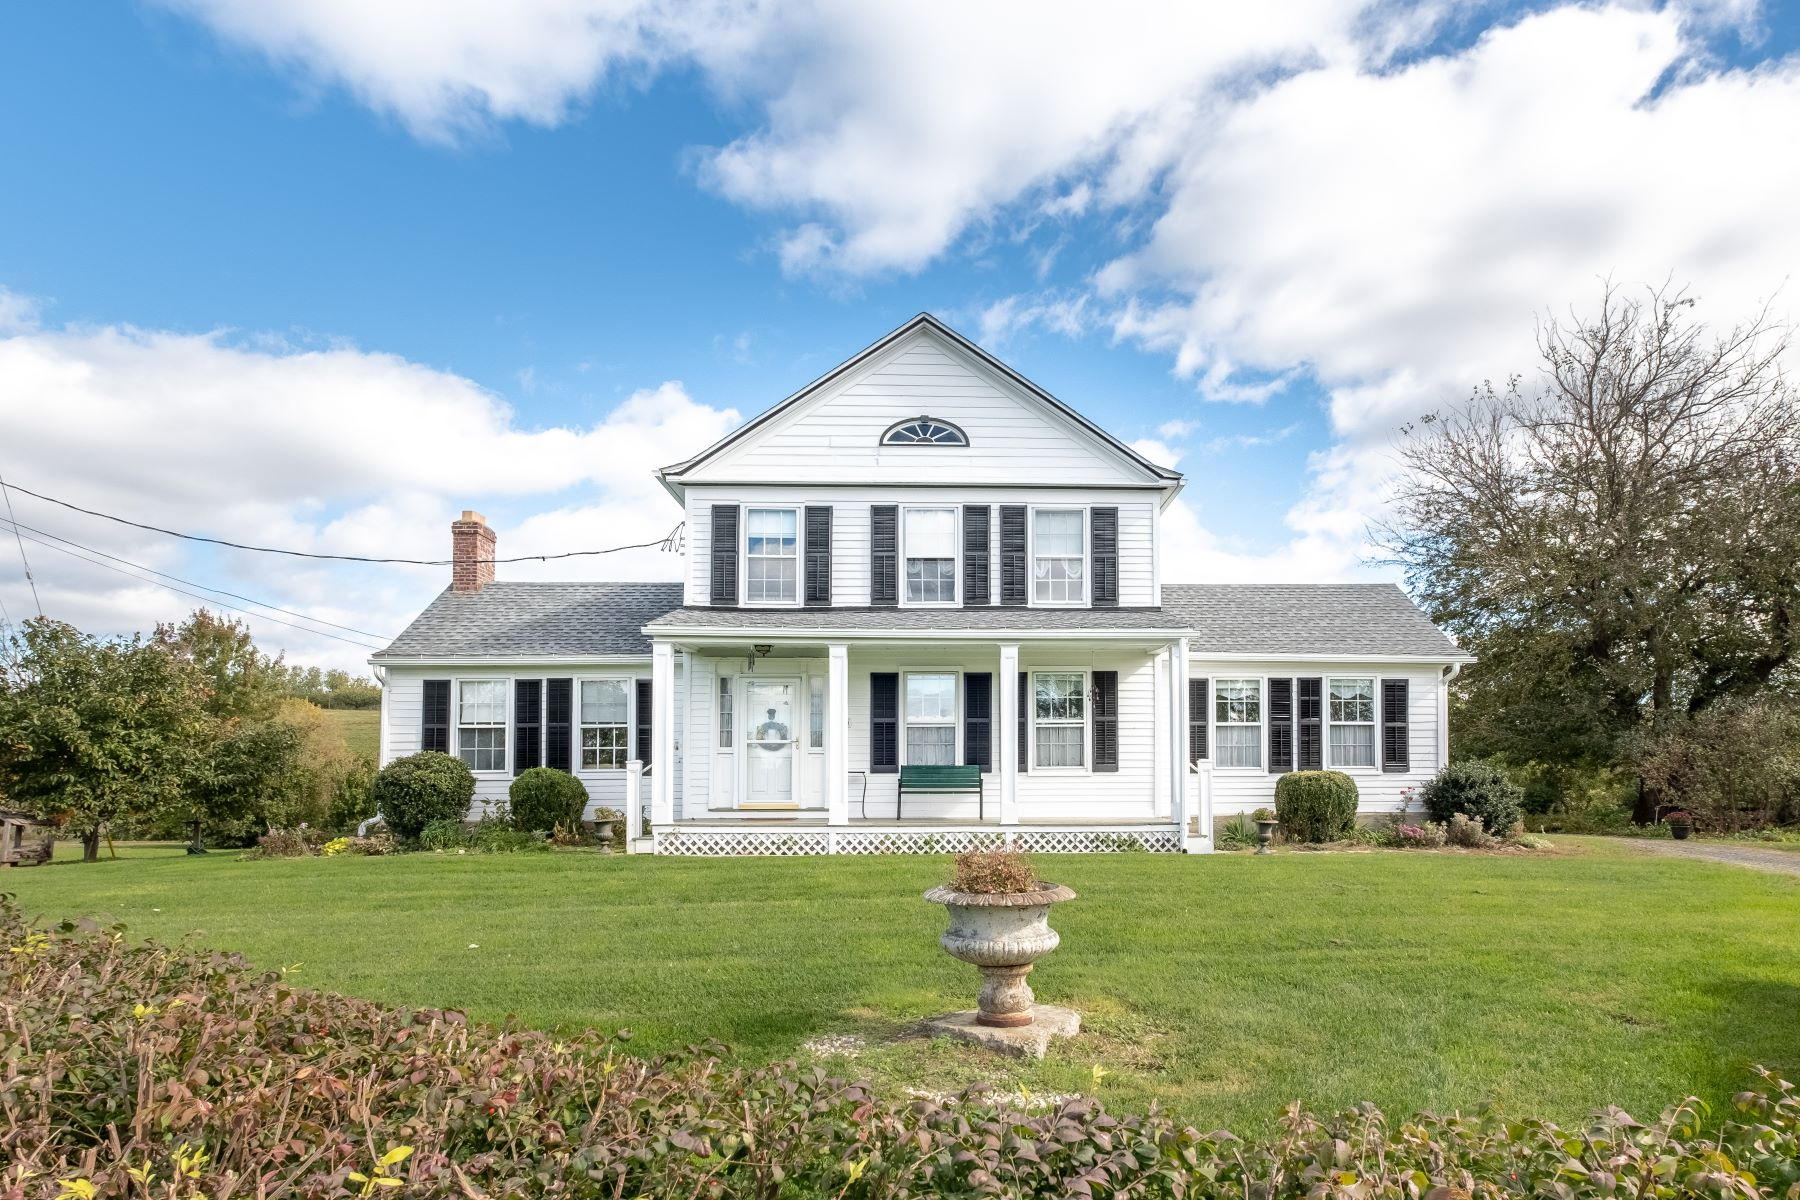 Single Family Homes for Sale at 1840s Farmhouse in the Catskills 340 New York 9H Claverack, New York 12513 United States